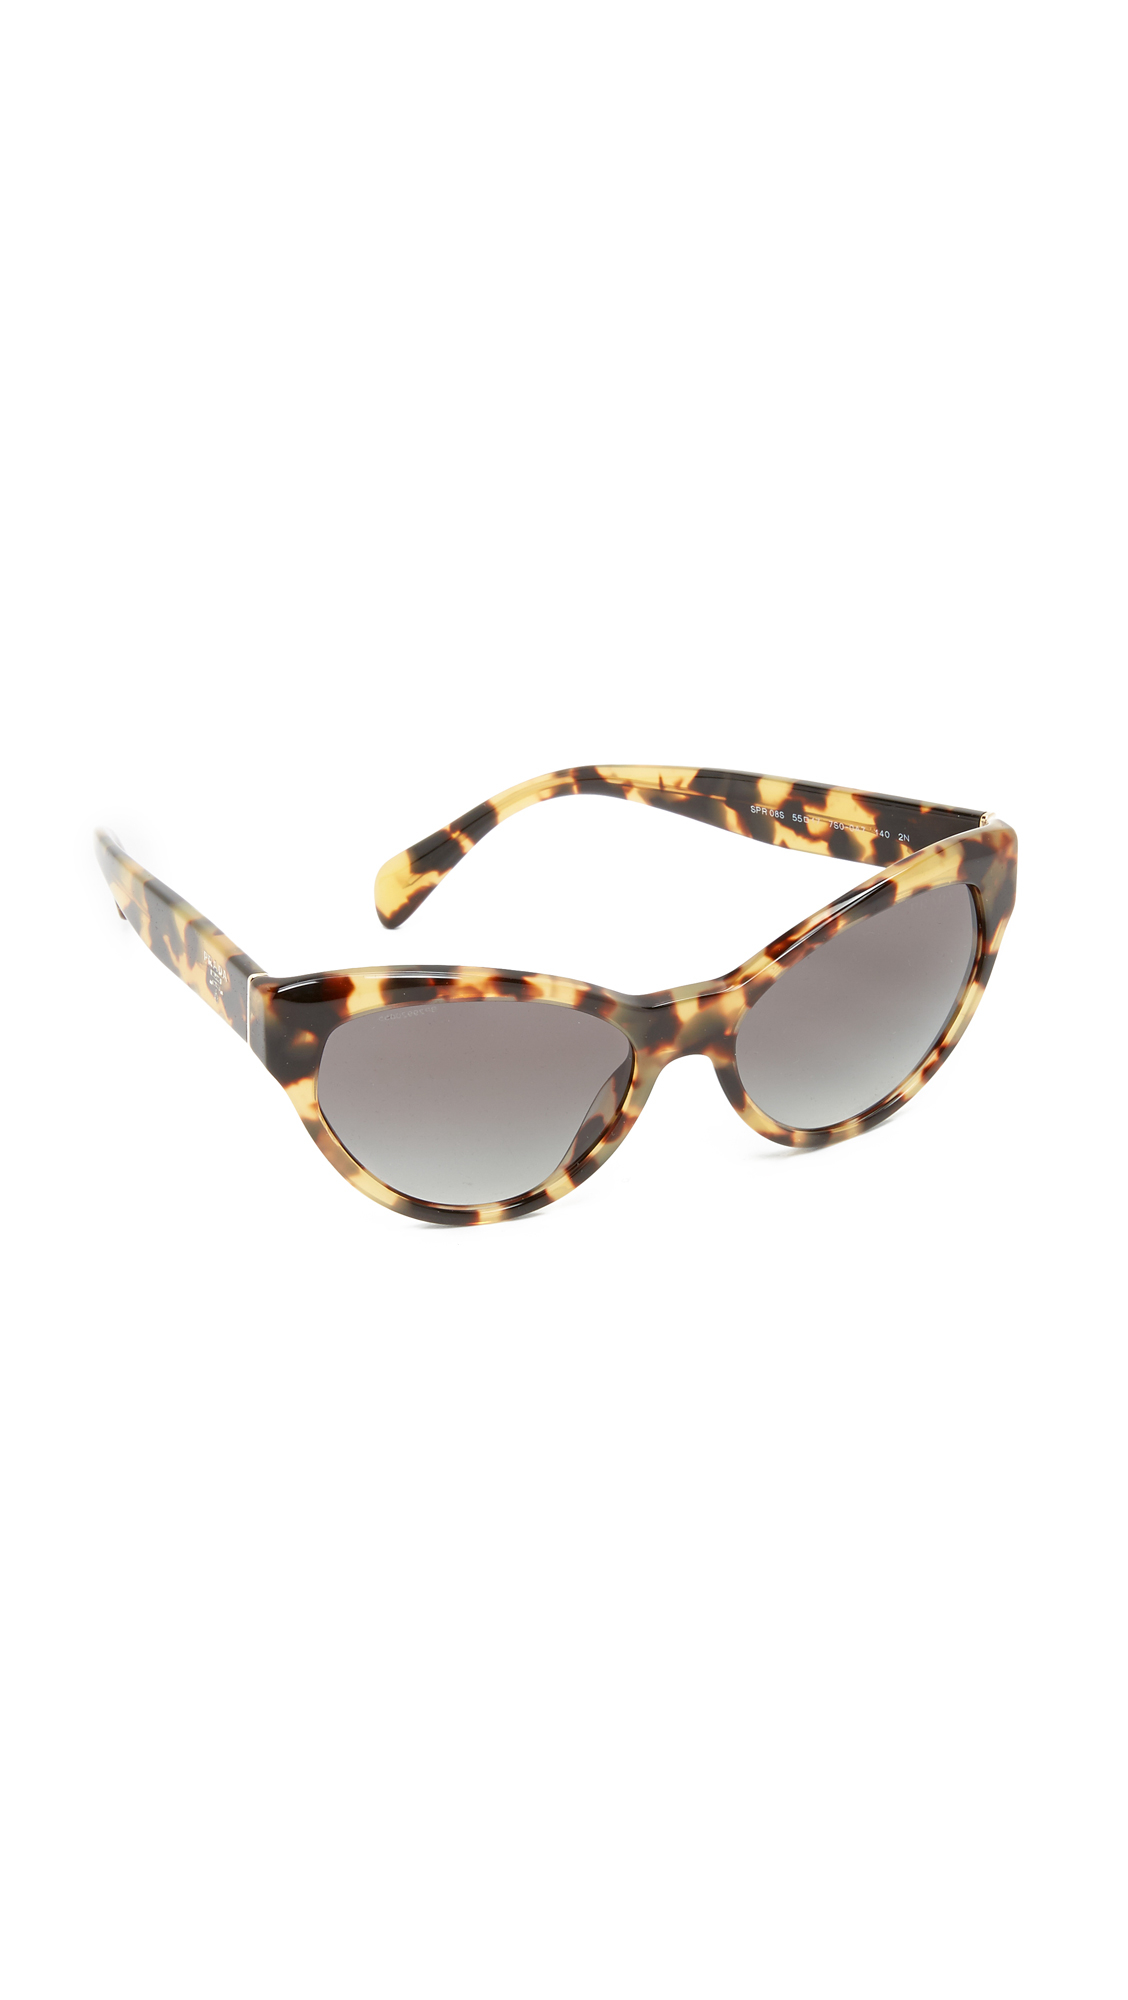 a6409f49738 best price prada cat eye tortoiseshell sunglasses 79dca e4e77